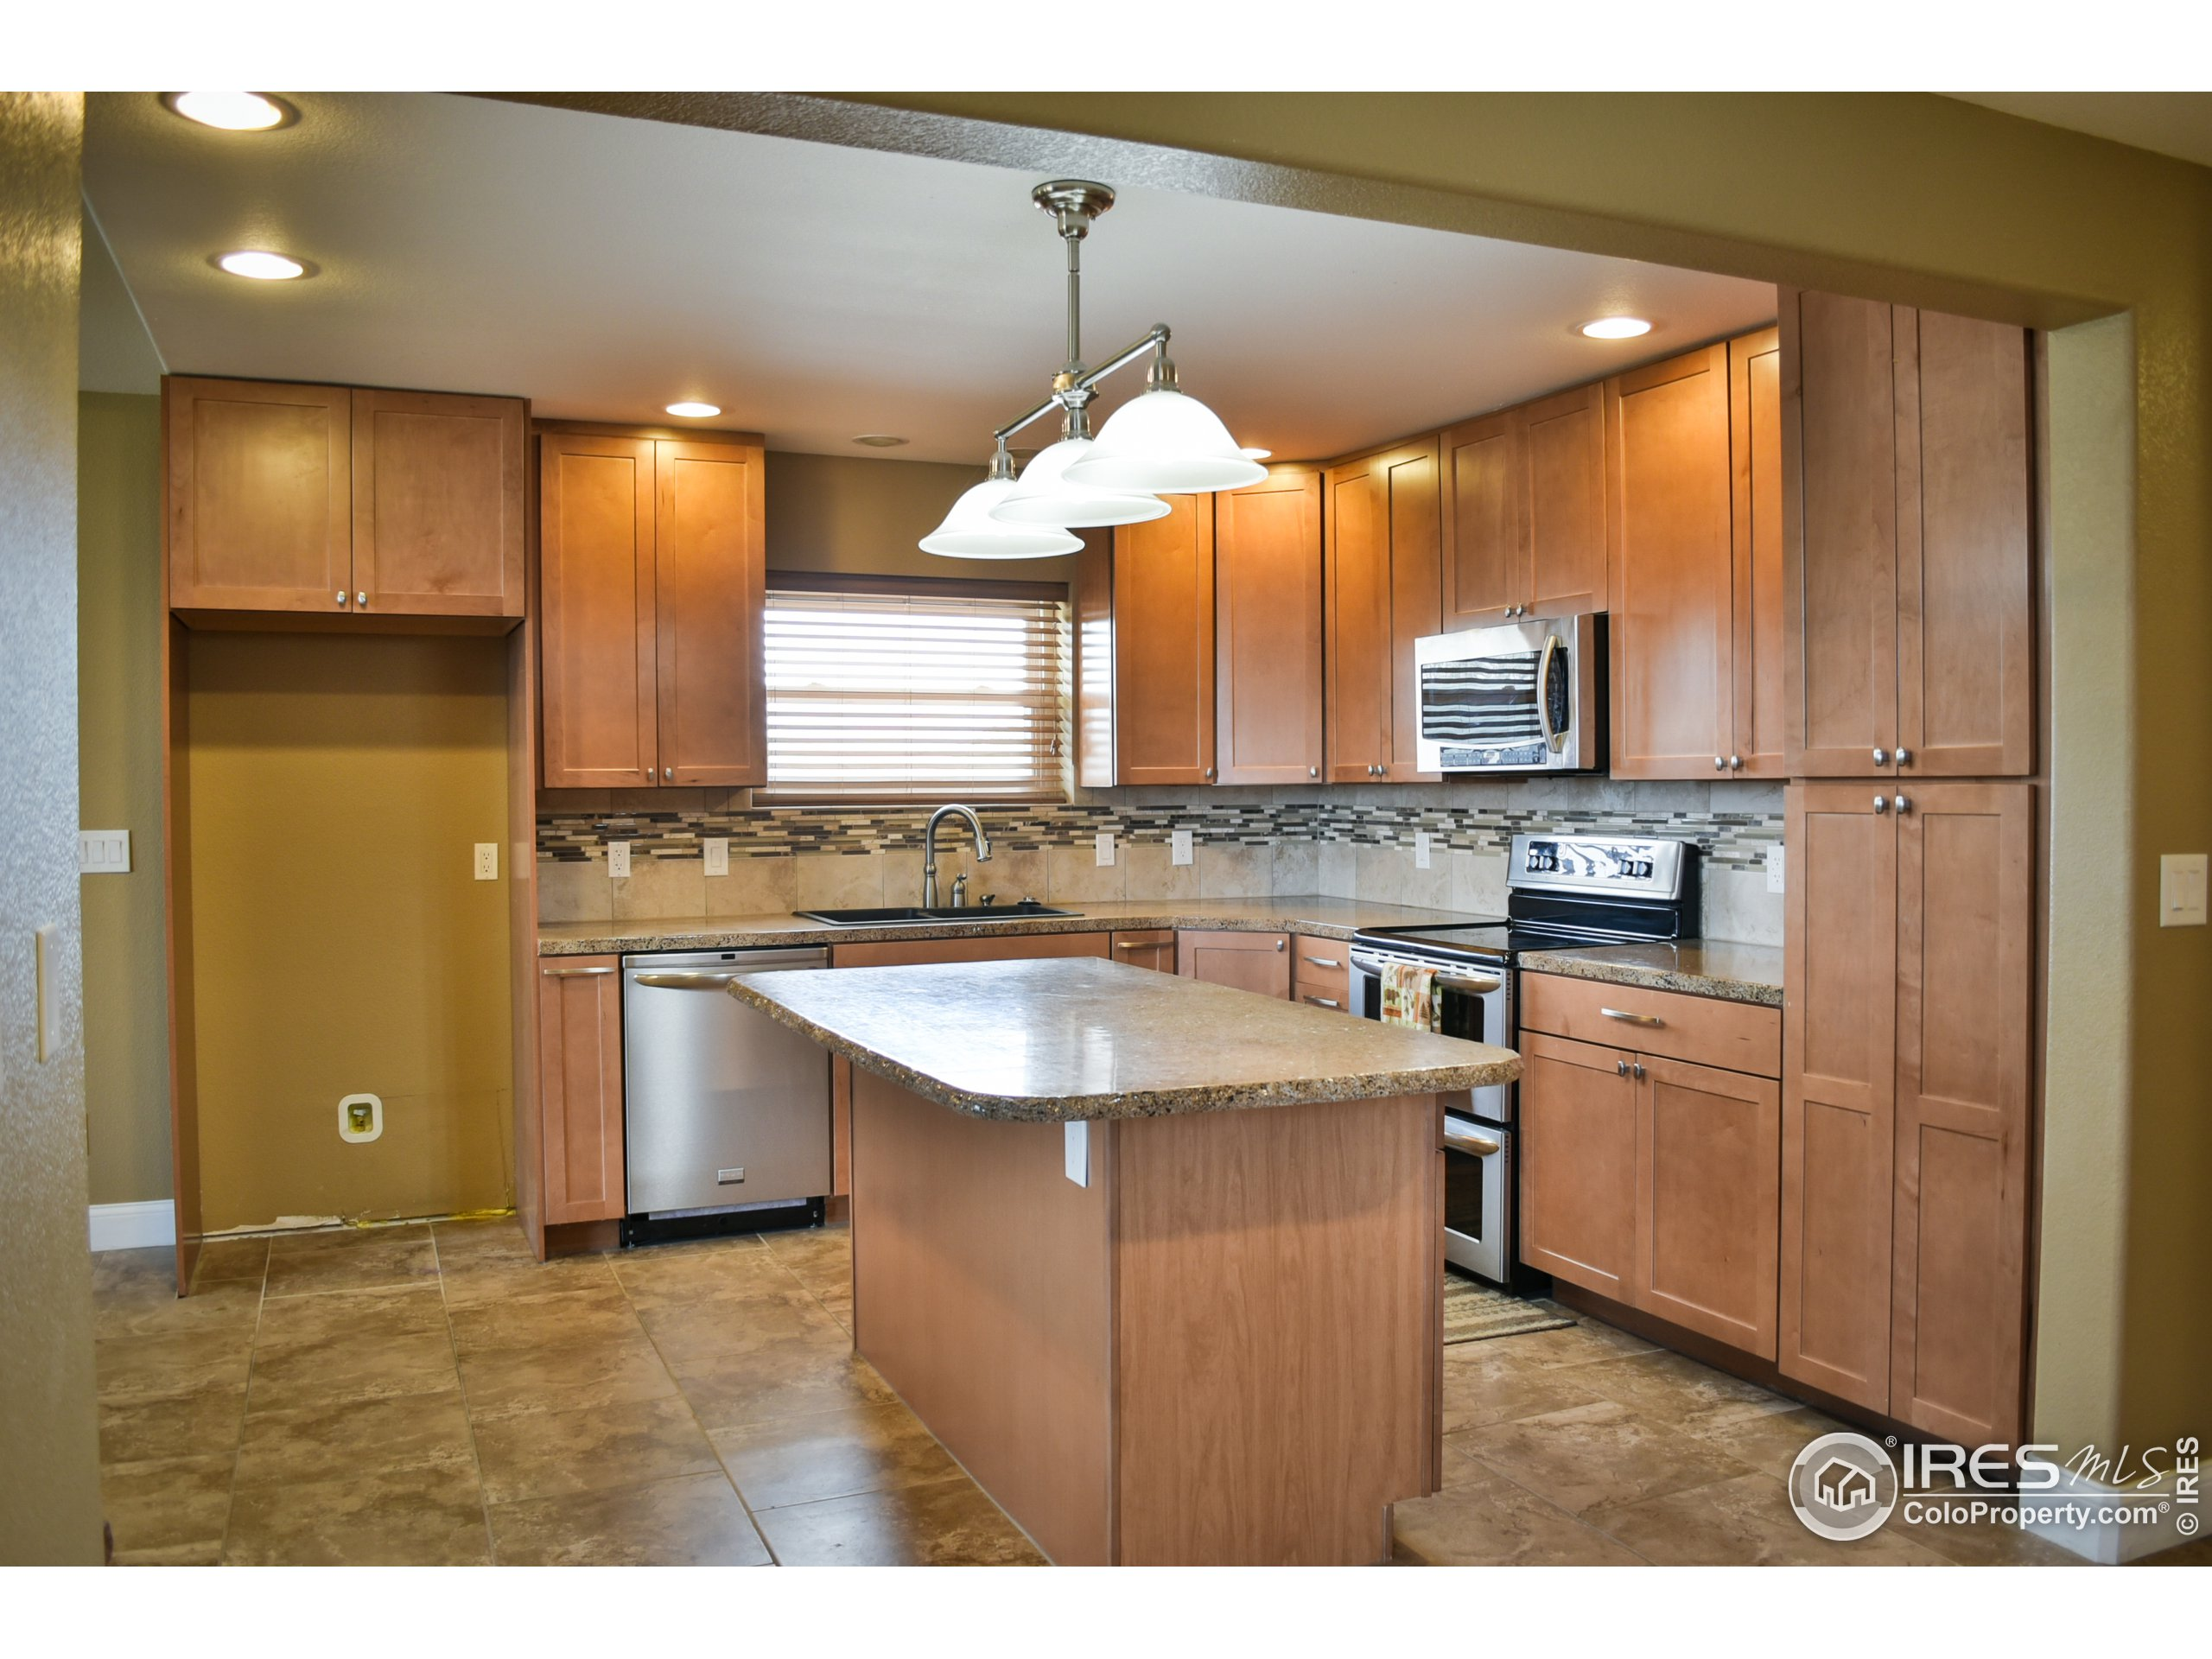 Remodeled Kitchen, seen from hearth room/ dining area.